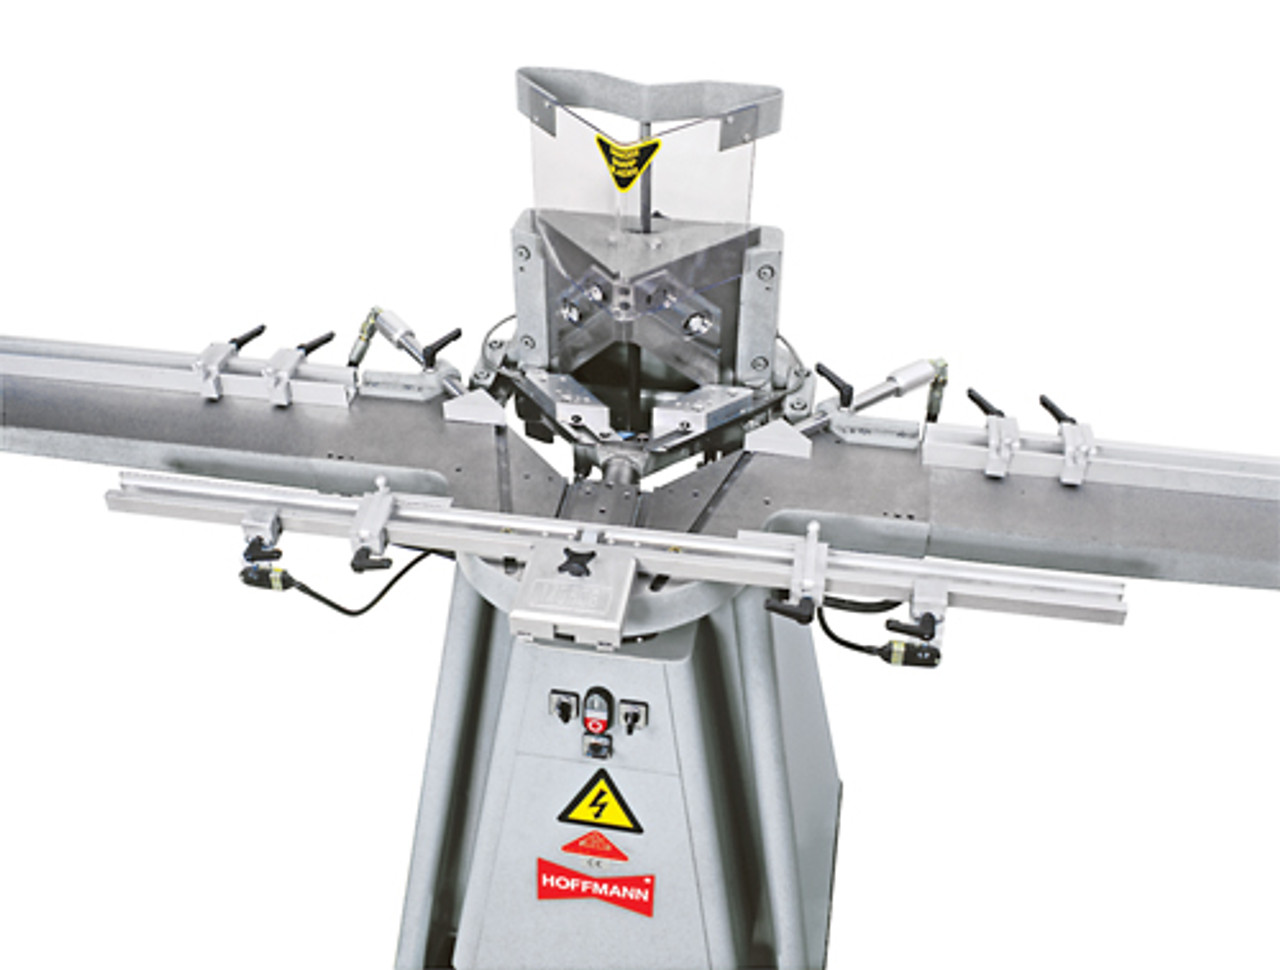 MORSO NXLEH electro-hydraulic face frame notching machine by Hoffmann-USA.com